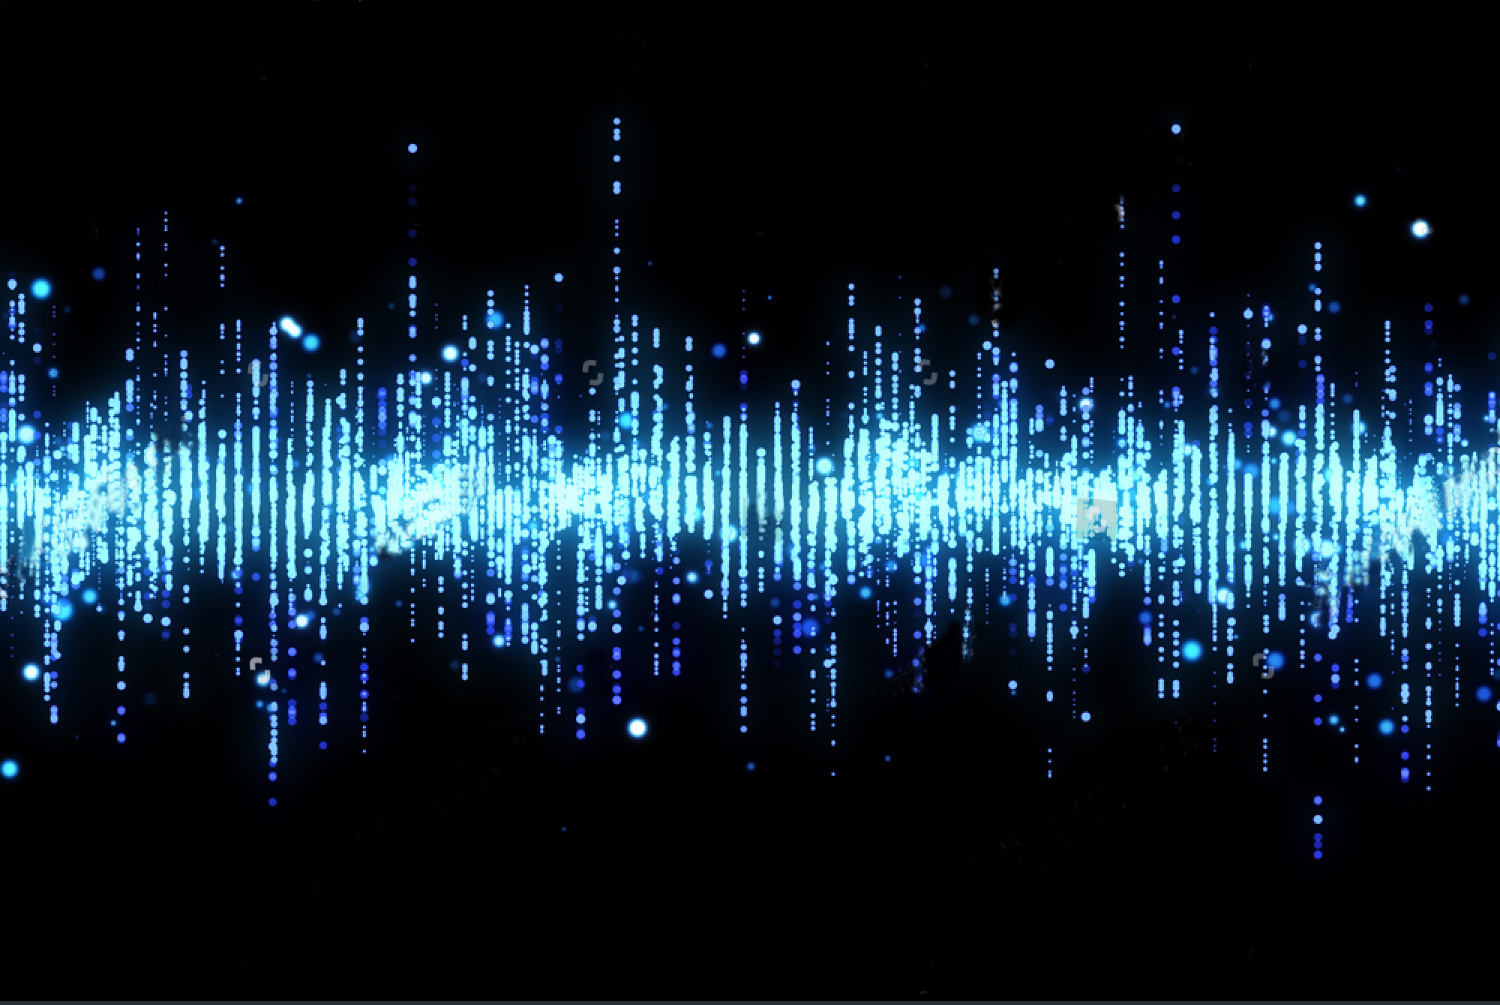 stock-photo-blue-high-tech-waveform-equalizer-d-illustration-702390469A.jpg